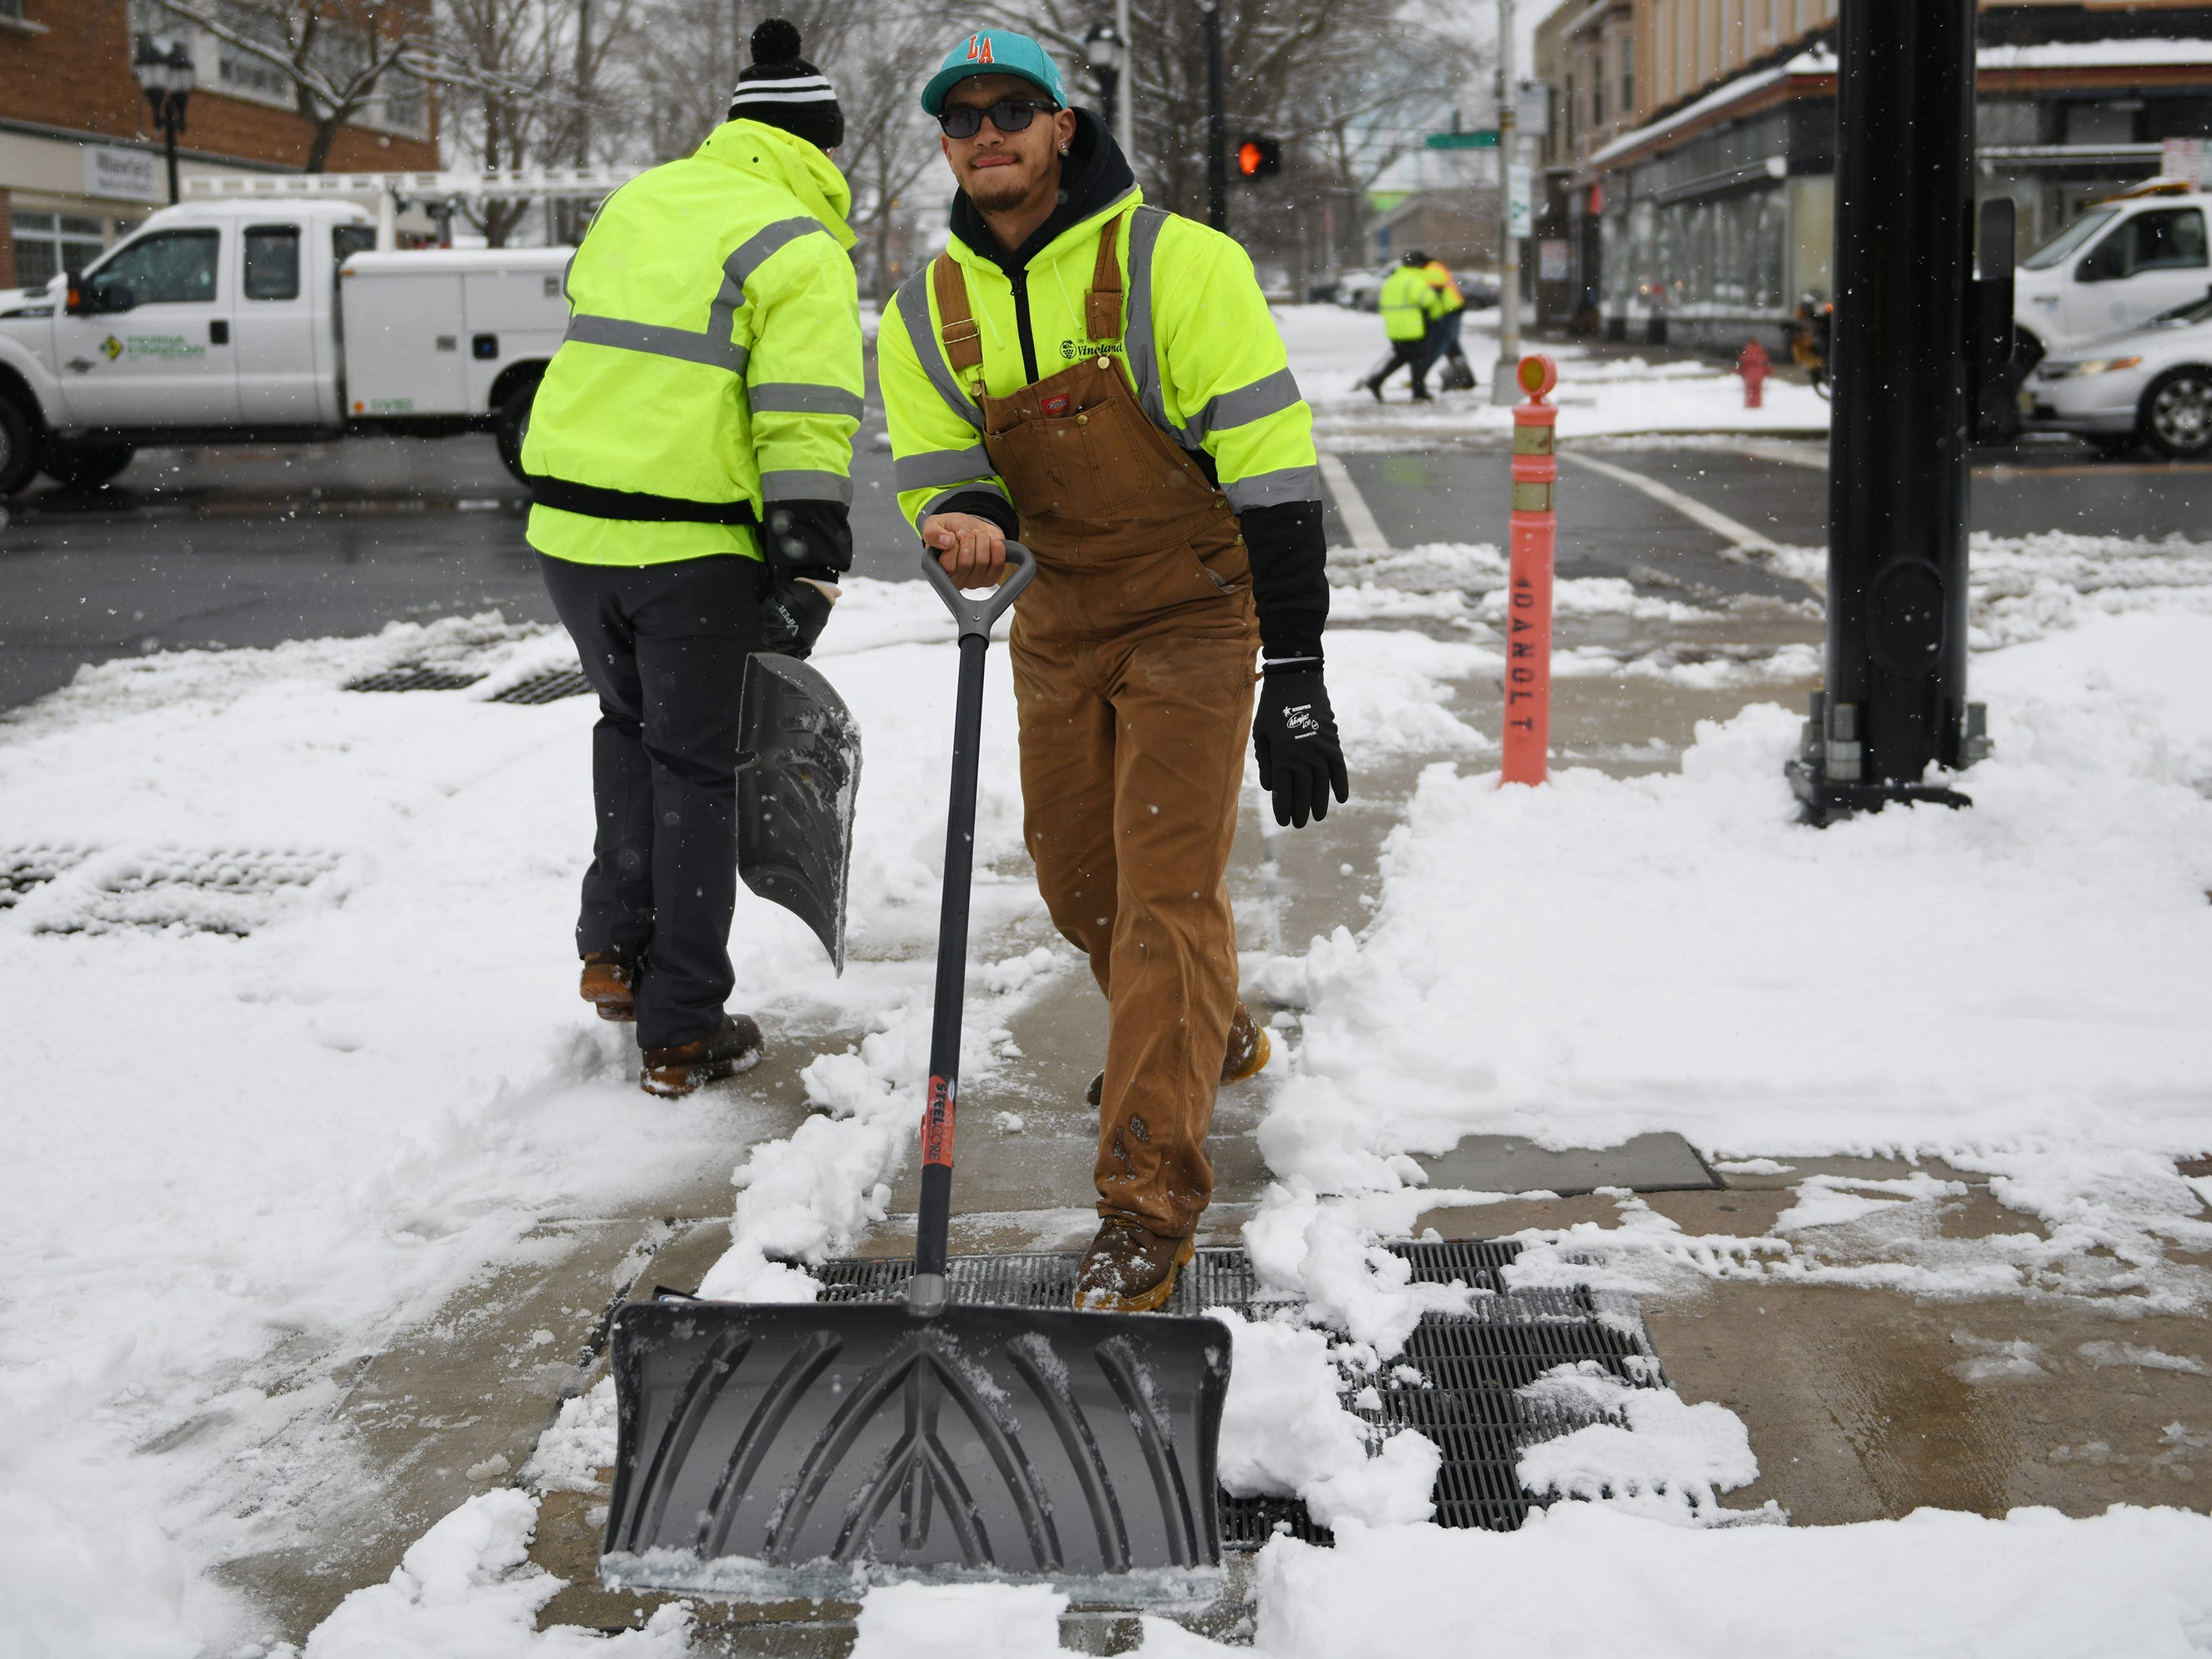 City of Vineland Public Works employees shovel snow from crosswalks on Landis Avenue on Monday, Feb. 11, 2019.